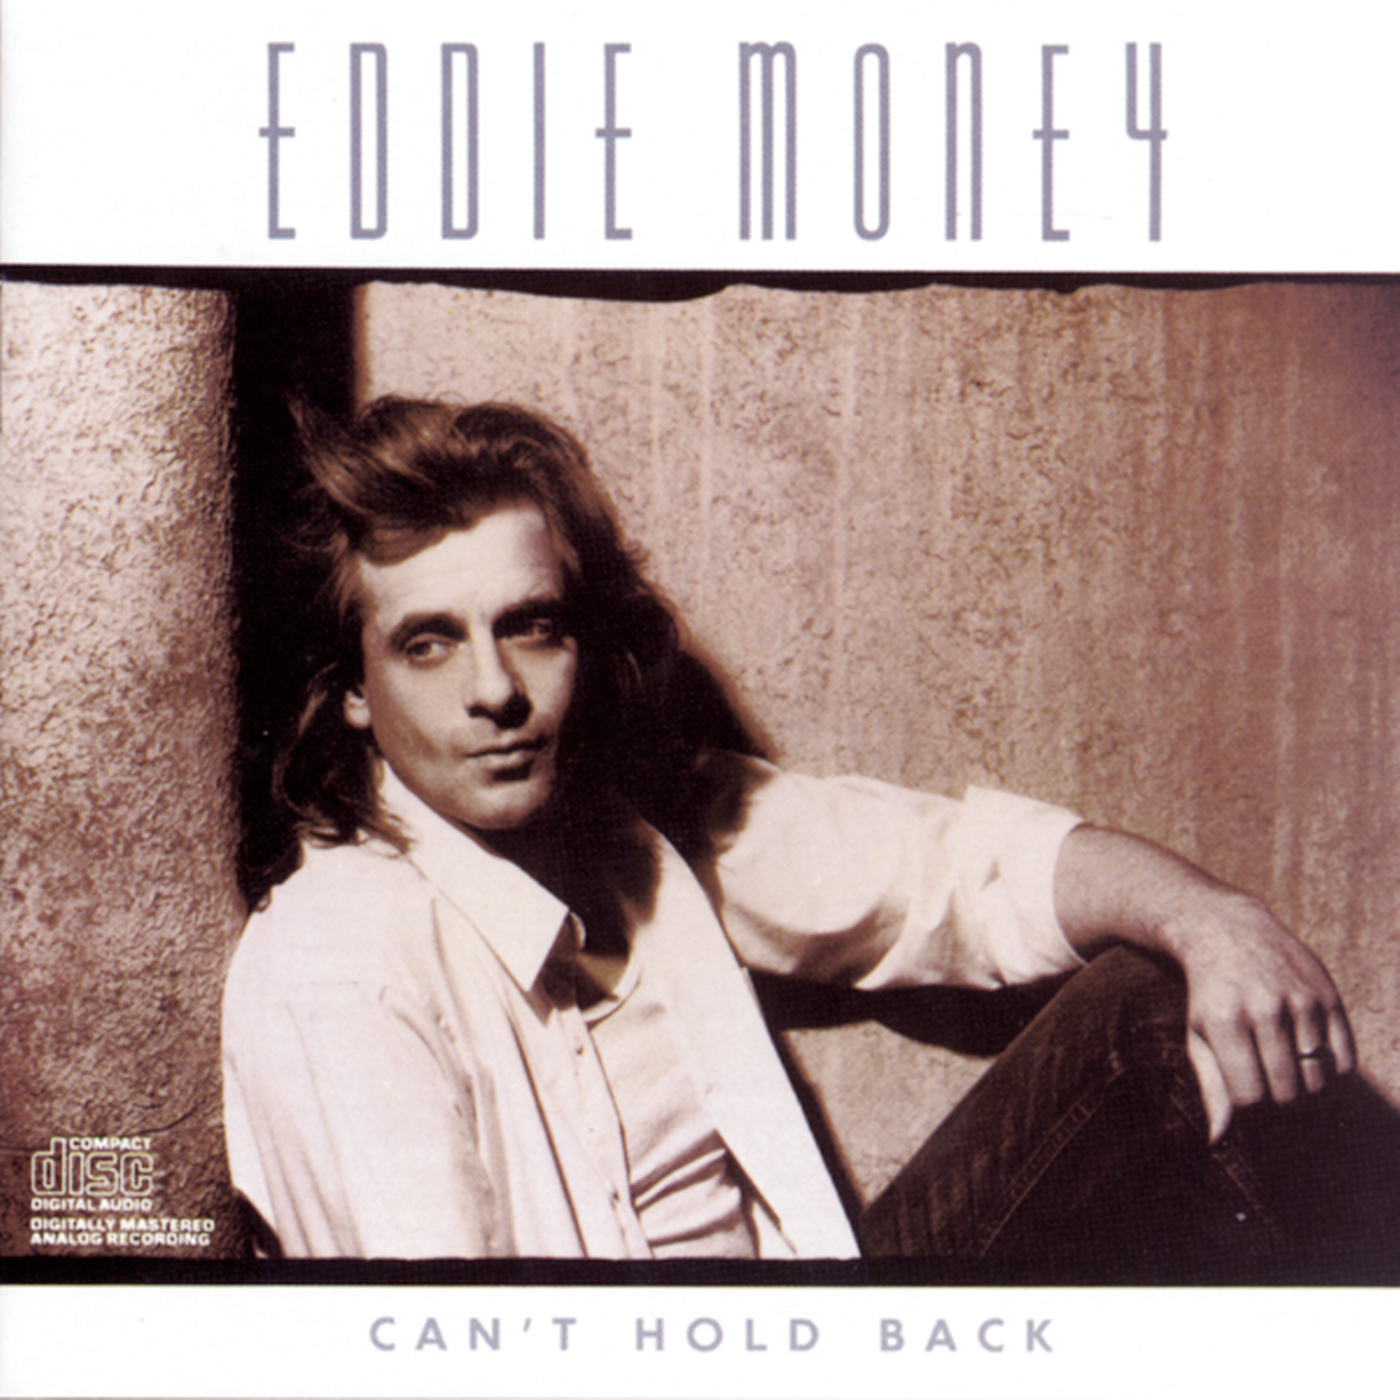 Listen Free to Eddie Money - Take Me Home Tonight Radio | iHeartRadio